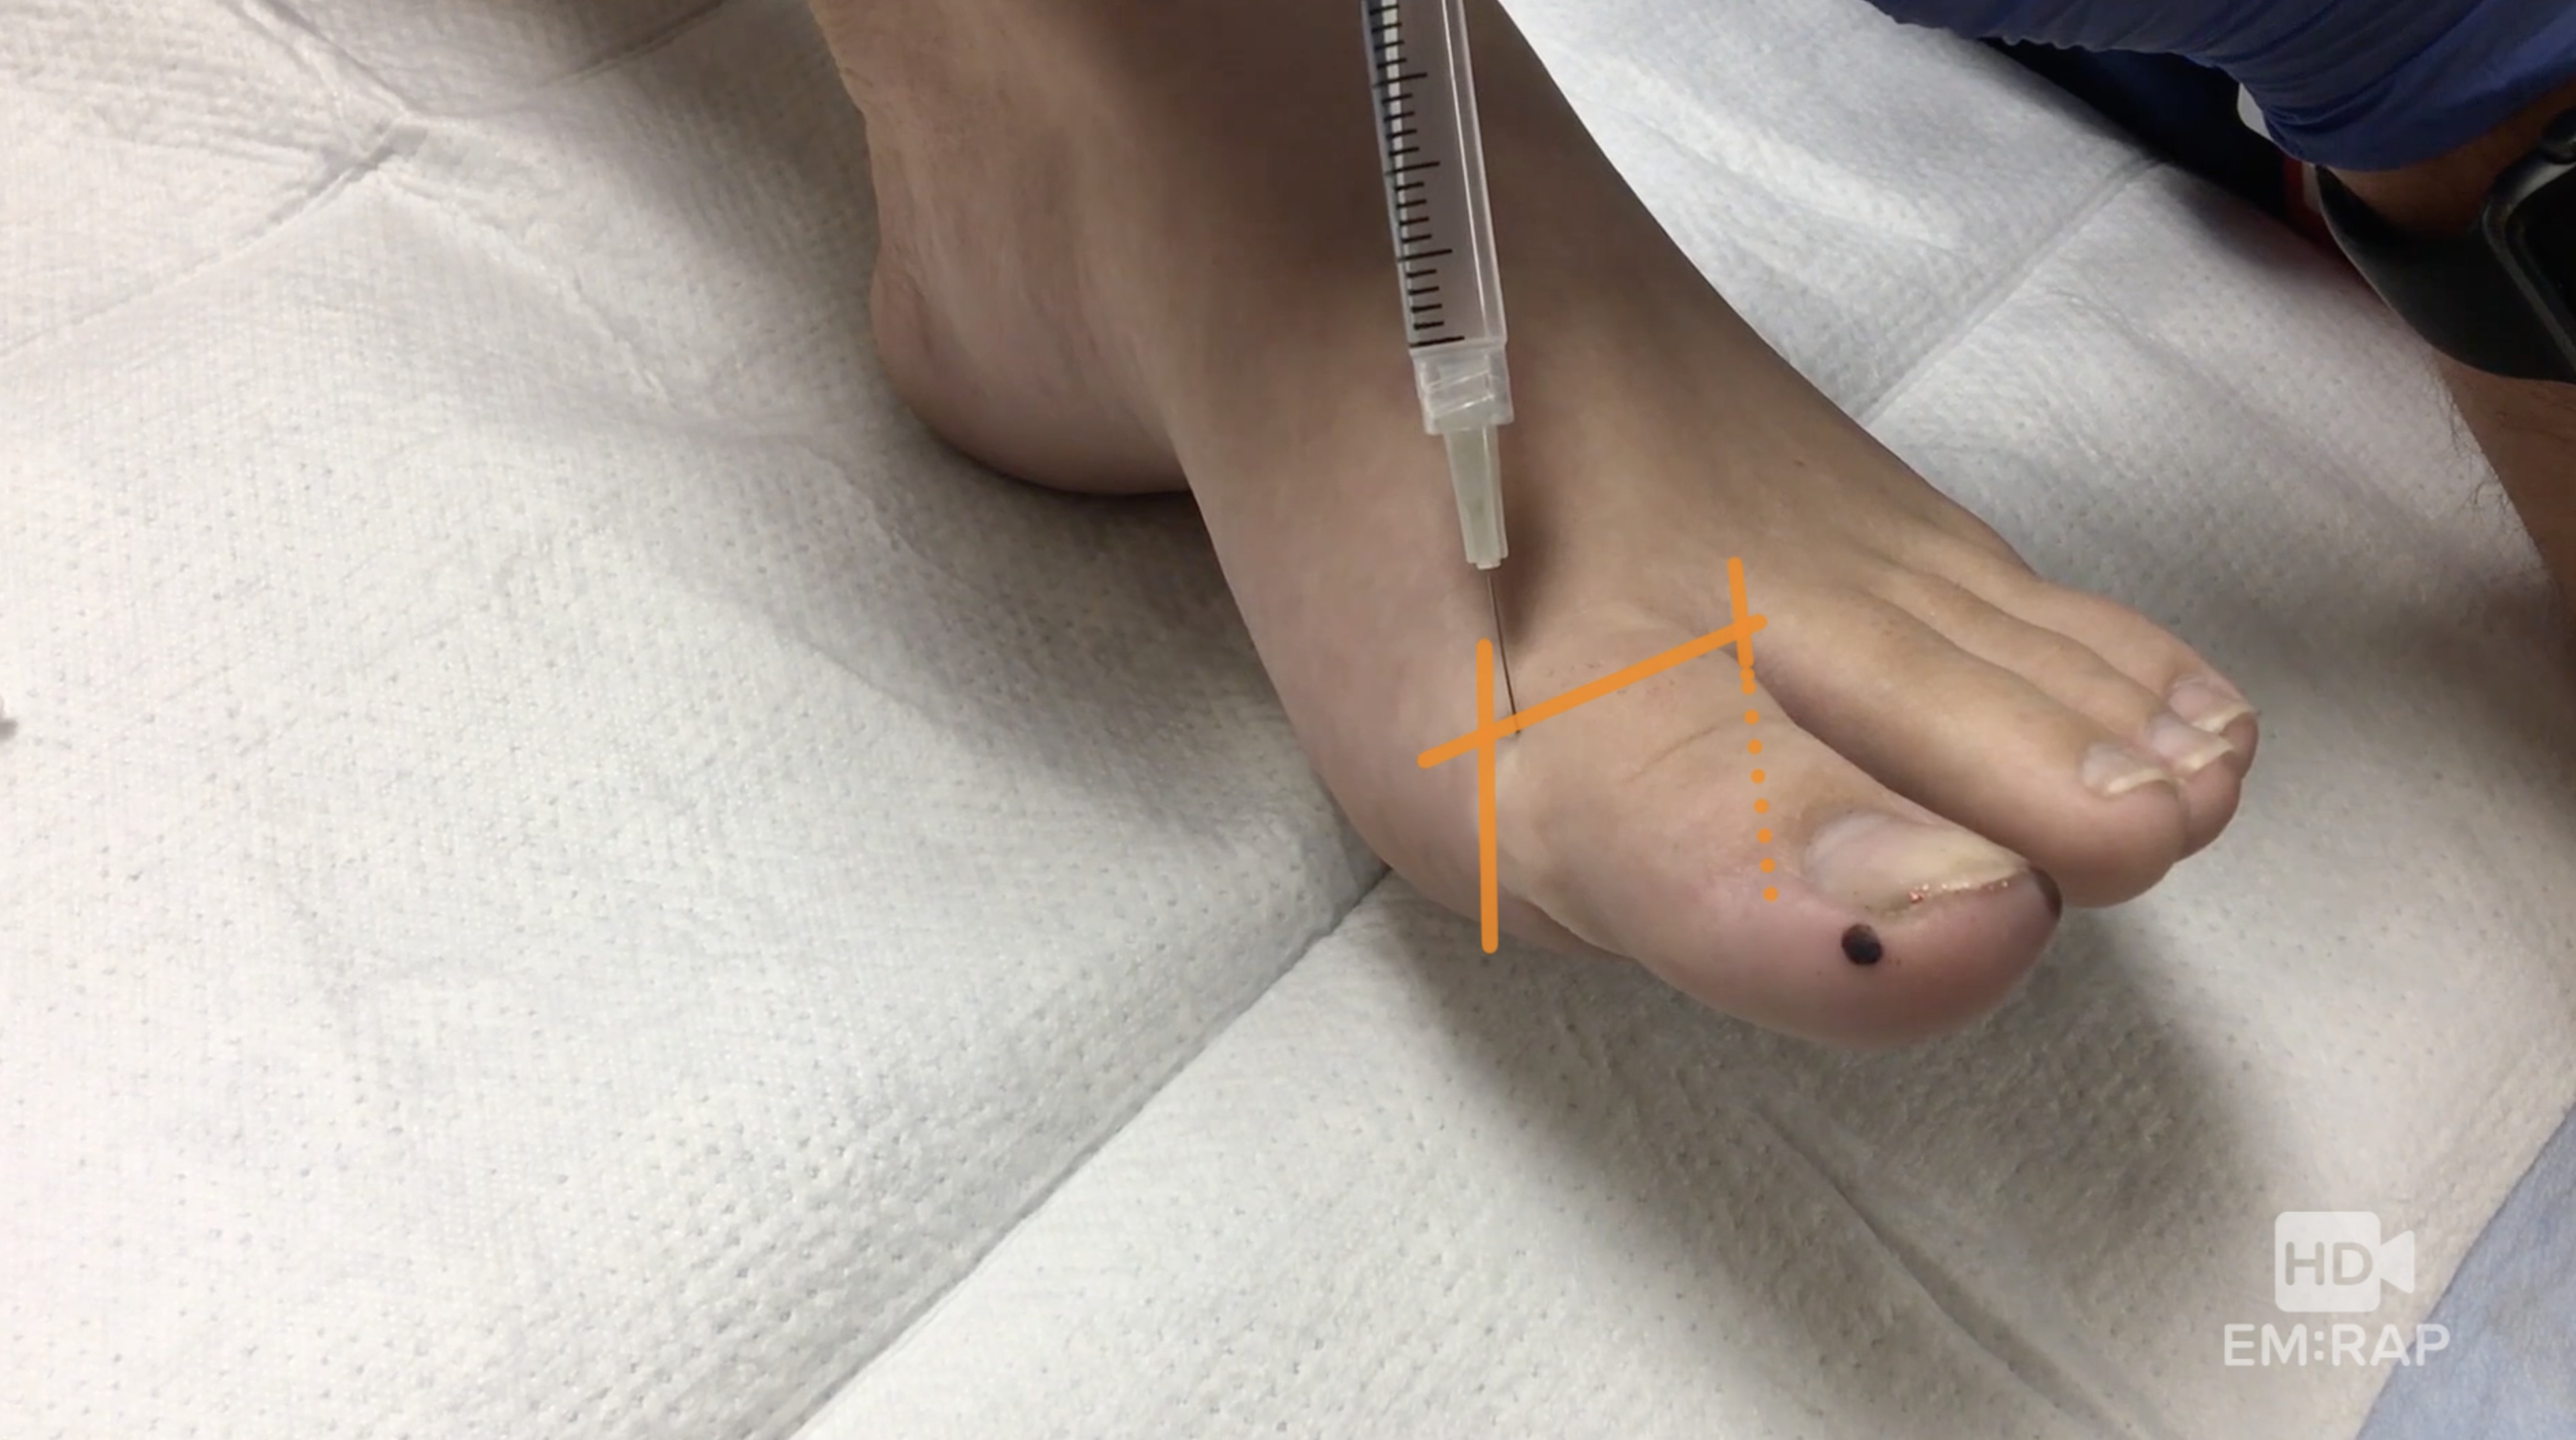 HD - Removal of Ingrown Toenail | EM:RAP